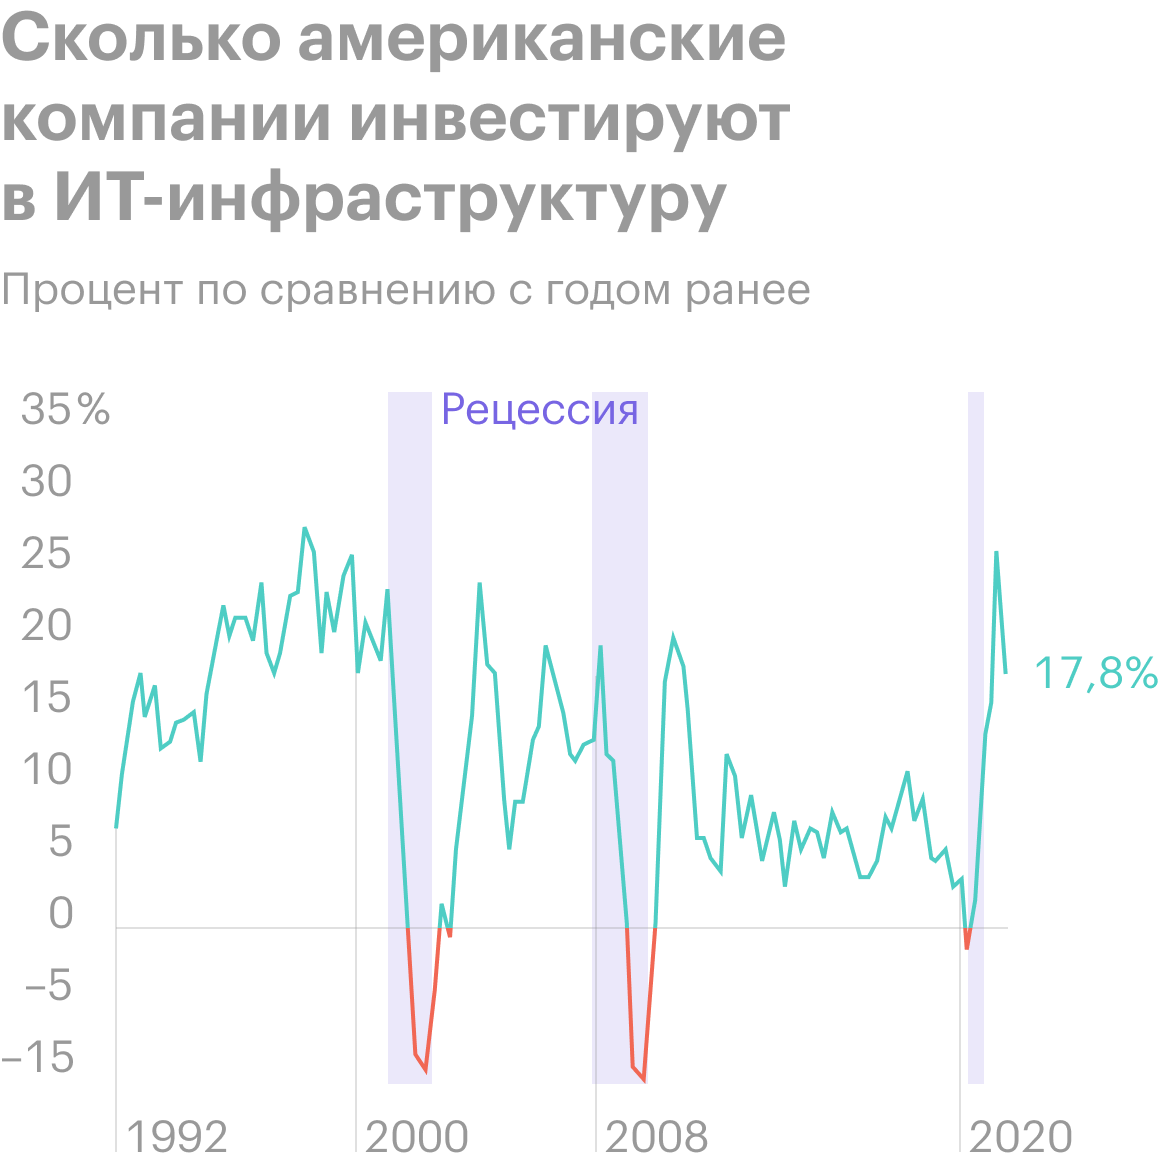 Источник: Daily Shot, Tech led the latest CapEx recovery, as companies prioritized digitization